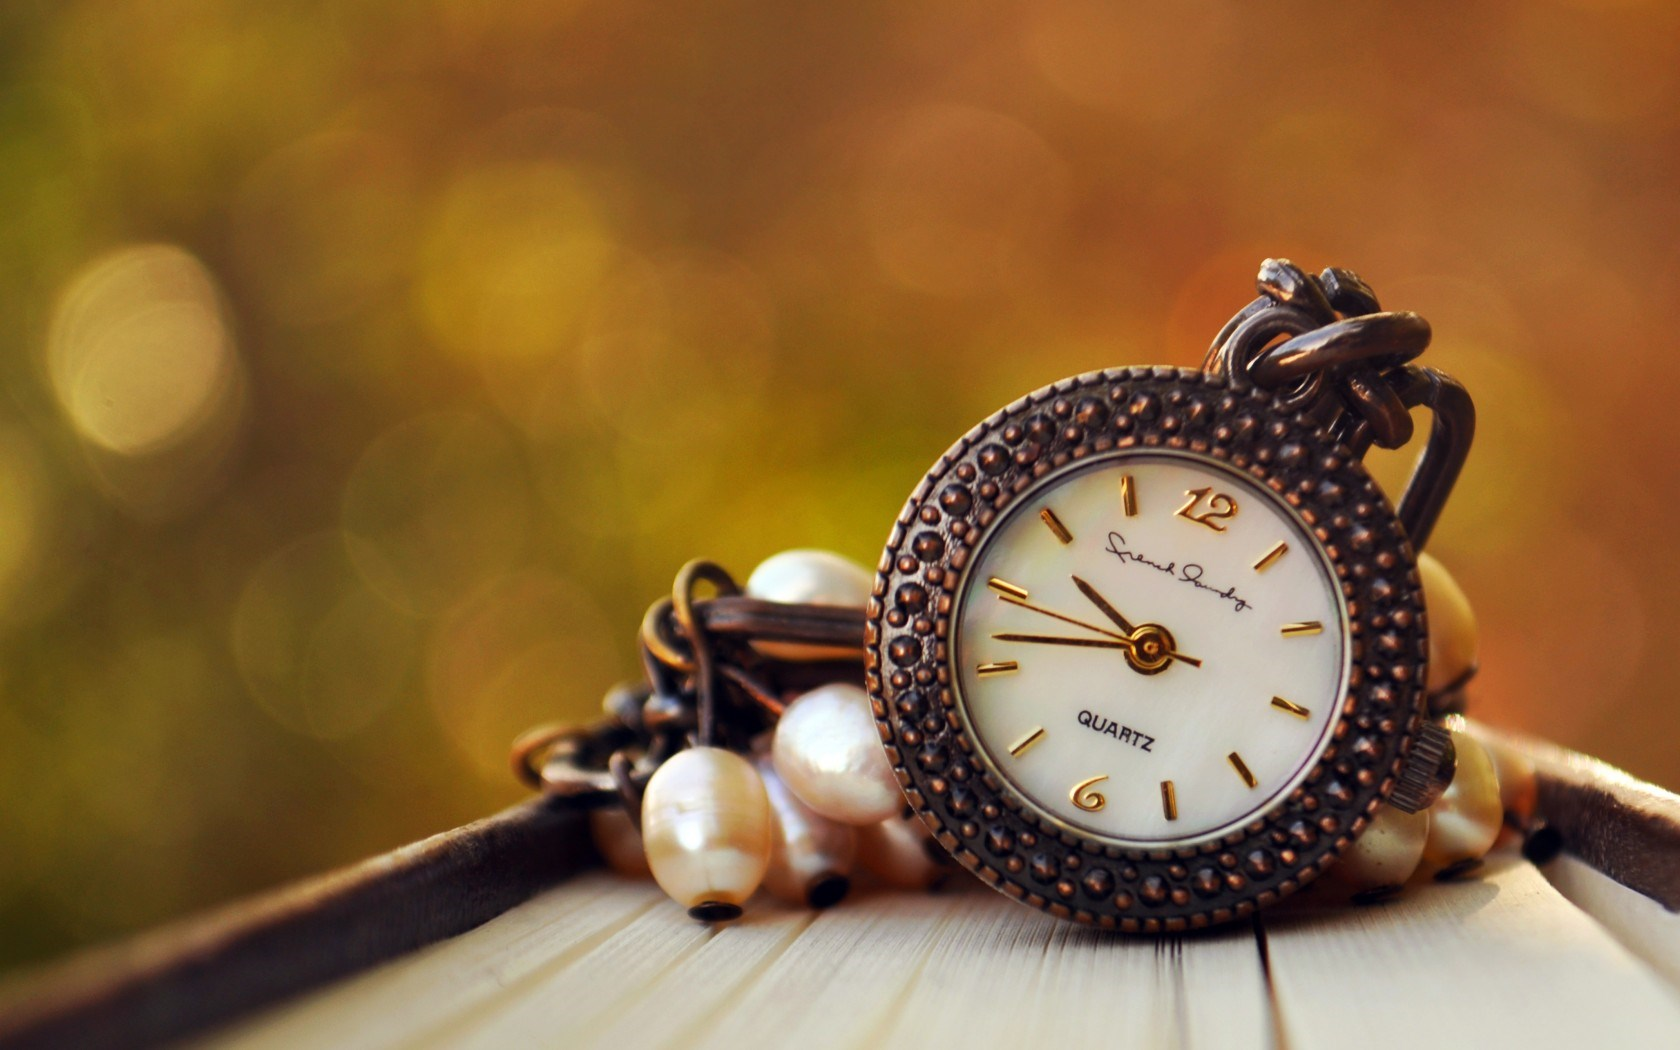 15 Wonderful Hd Pocket Watch Wallpapers Hdwallsource Com HD Wallpapers Download Free Images Wallpaper [1000image.com]